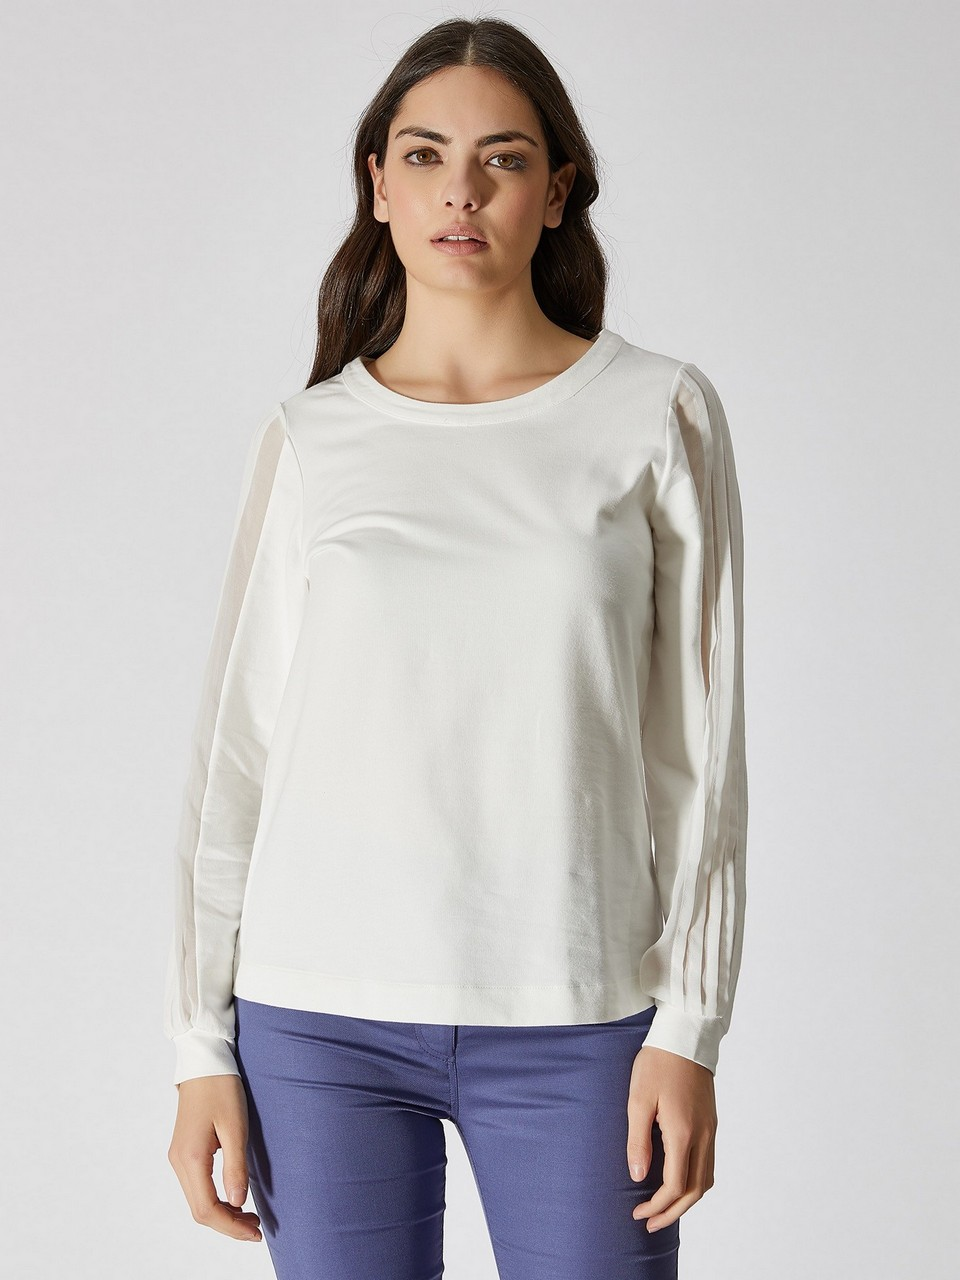 Chiffon Sleeve Detailed Sweatshirt